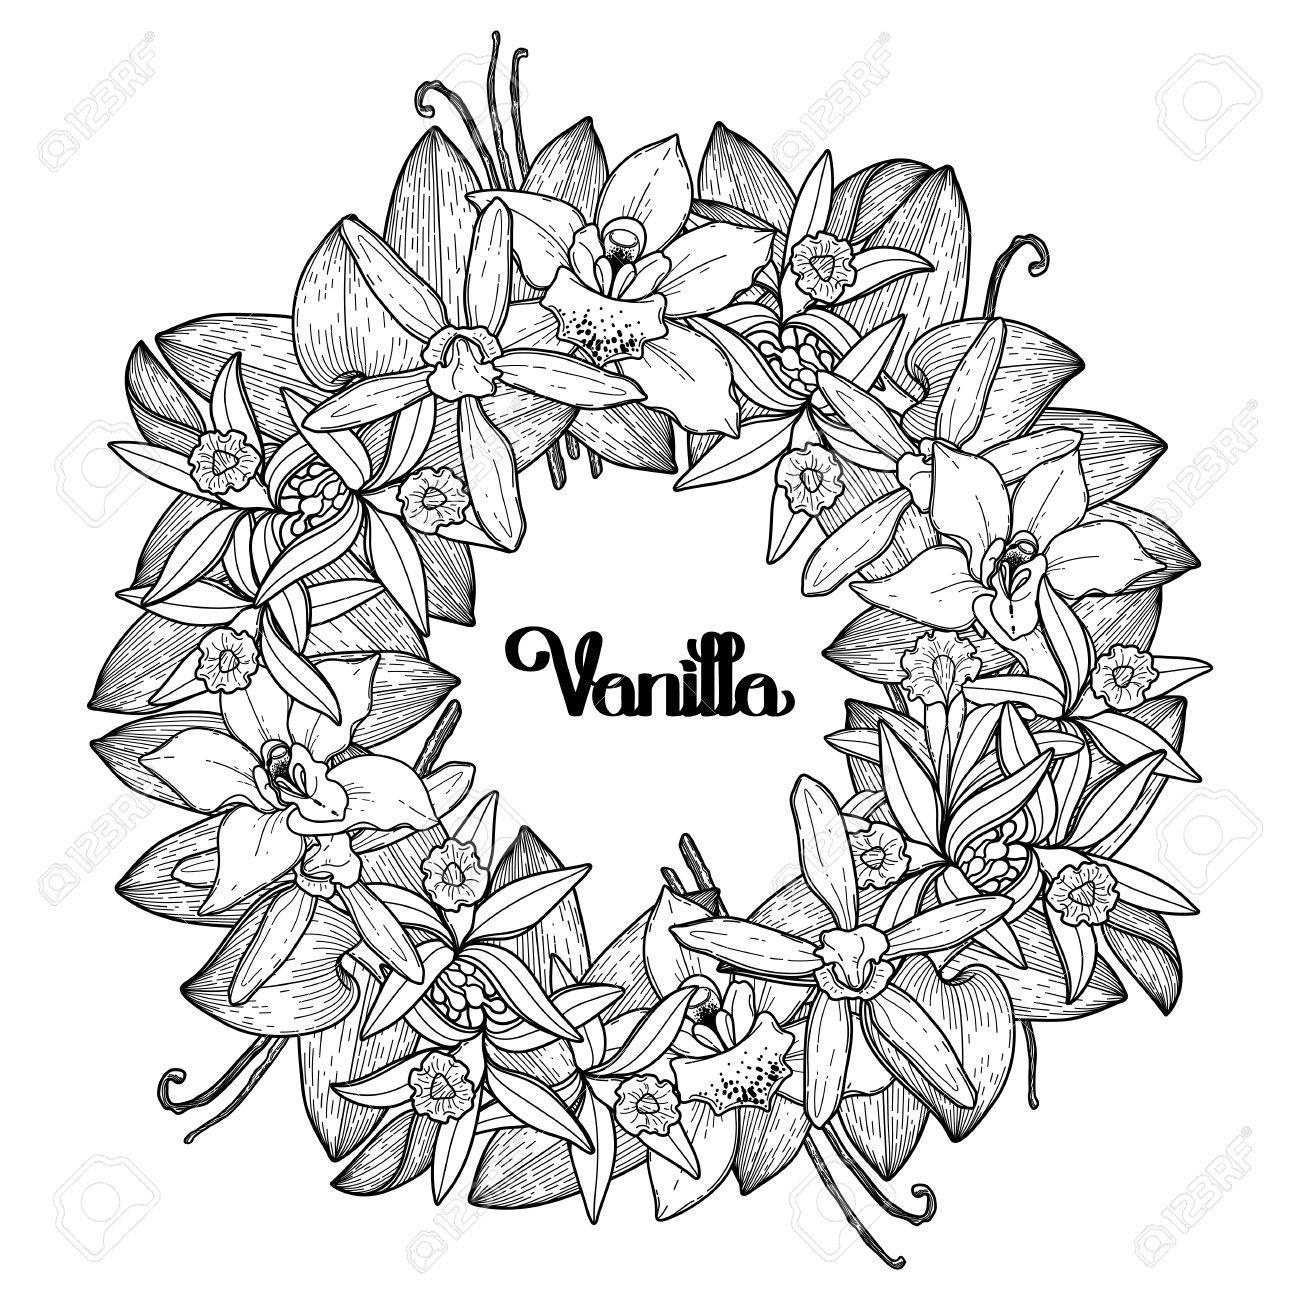 Graphic Vanilla Wreath Vector Floral Decoration Coloring Book Page Design For Adults And Kids